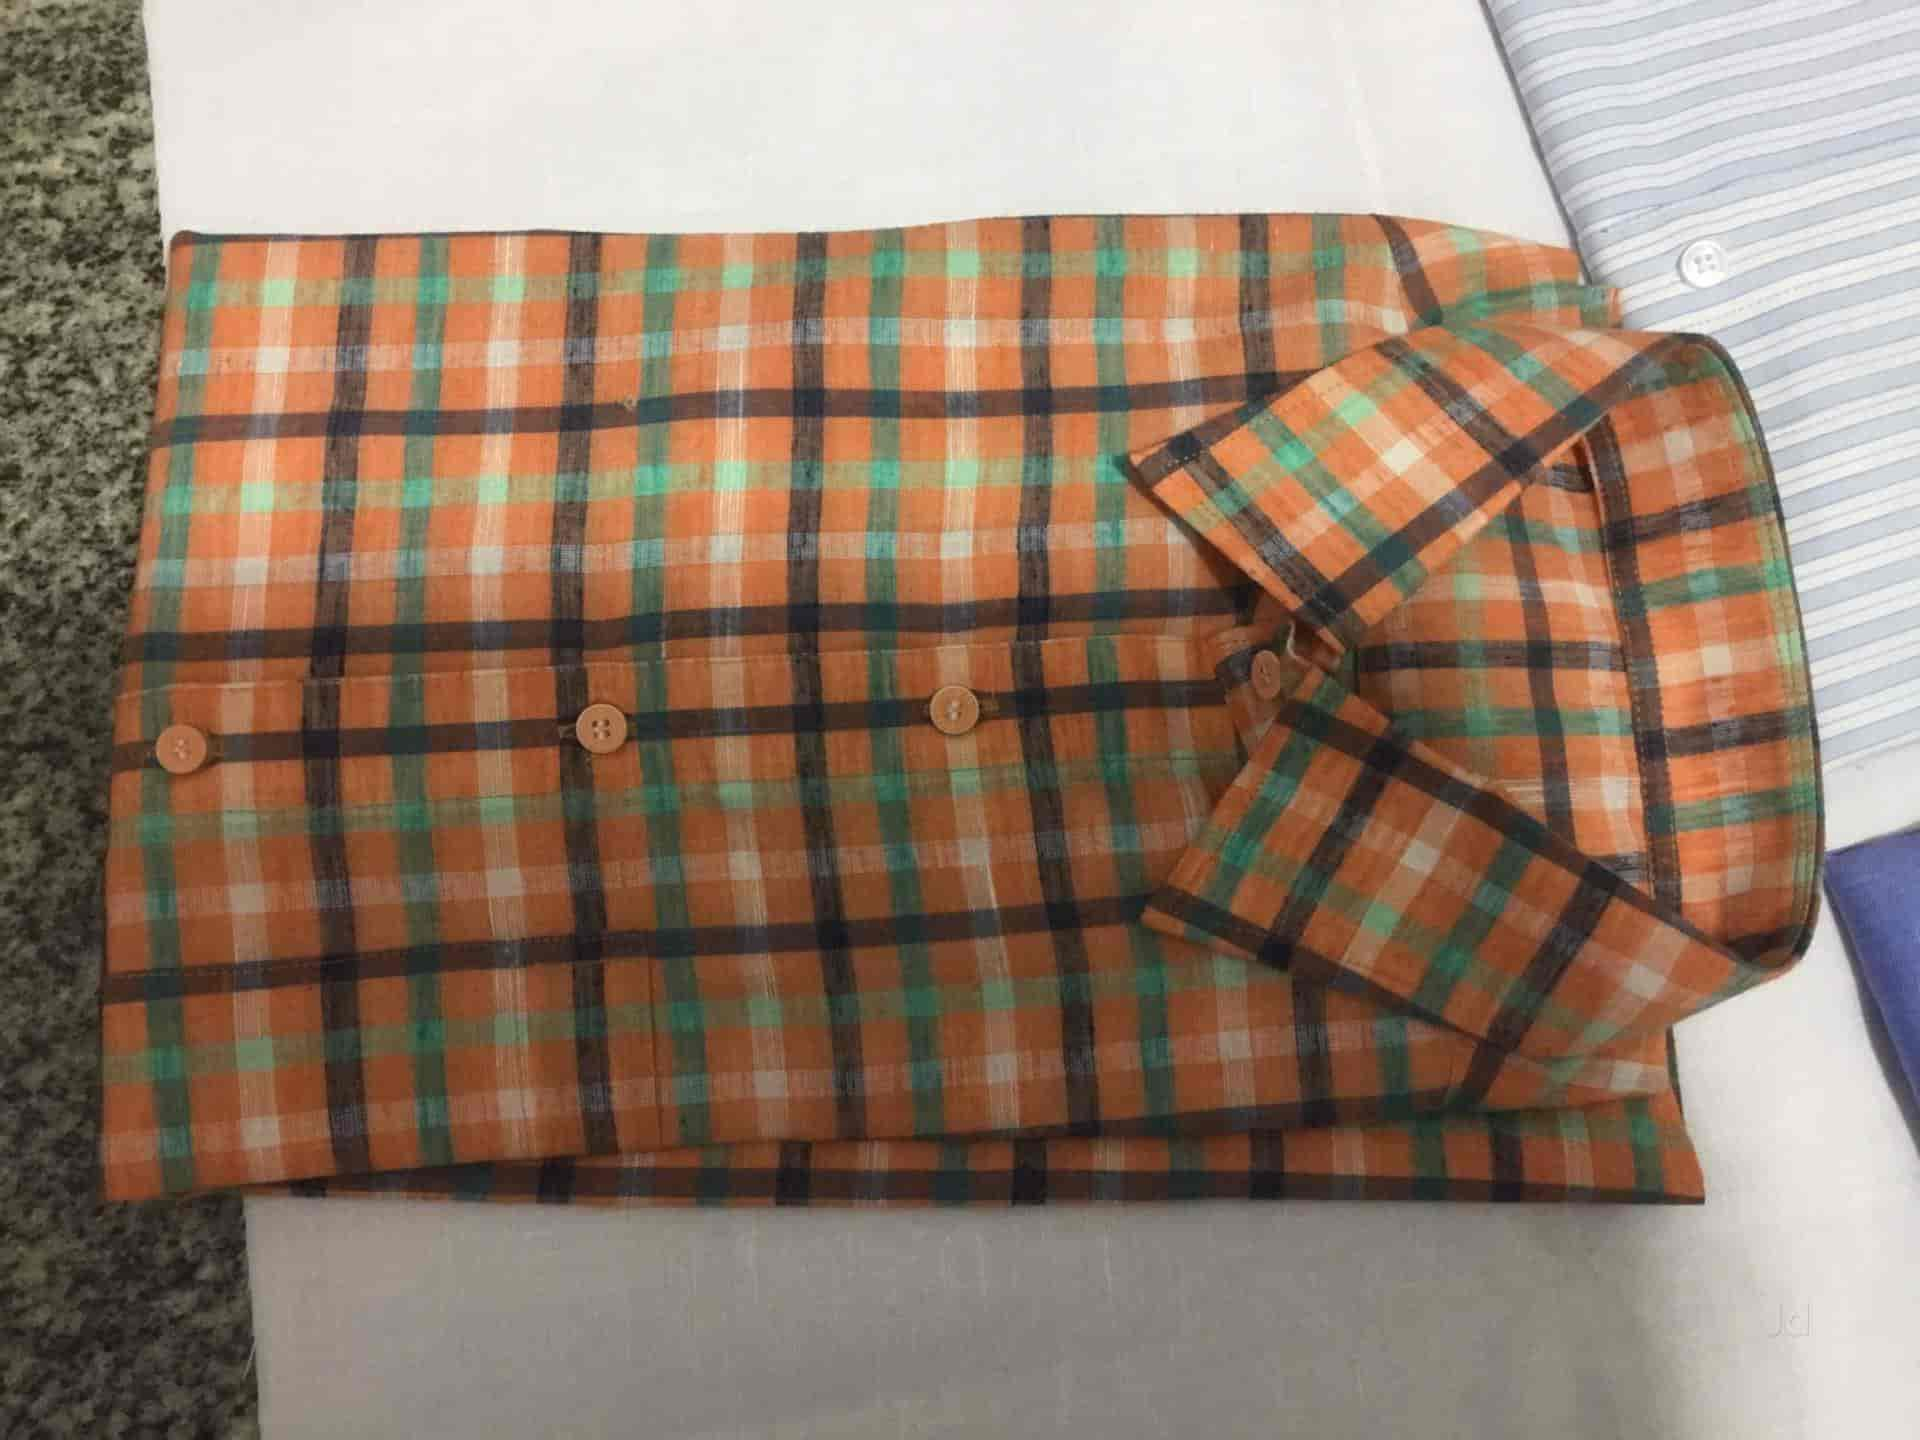 LIFE STYLE TAILOR, Revenue Colony - Tailors in Kurnool - Justdial